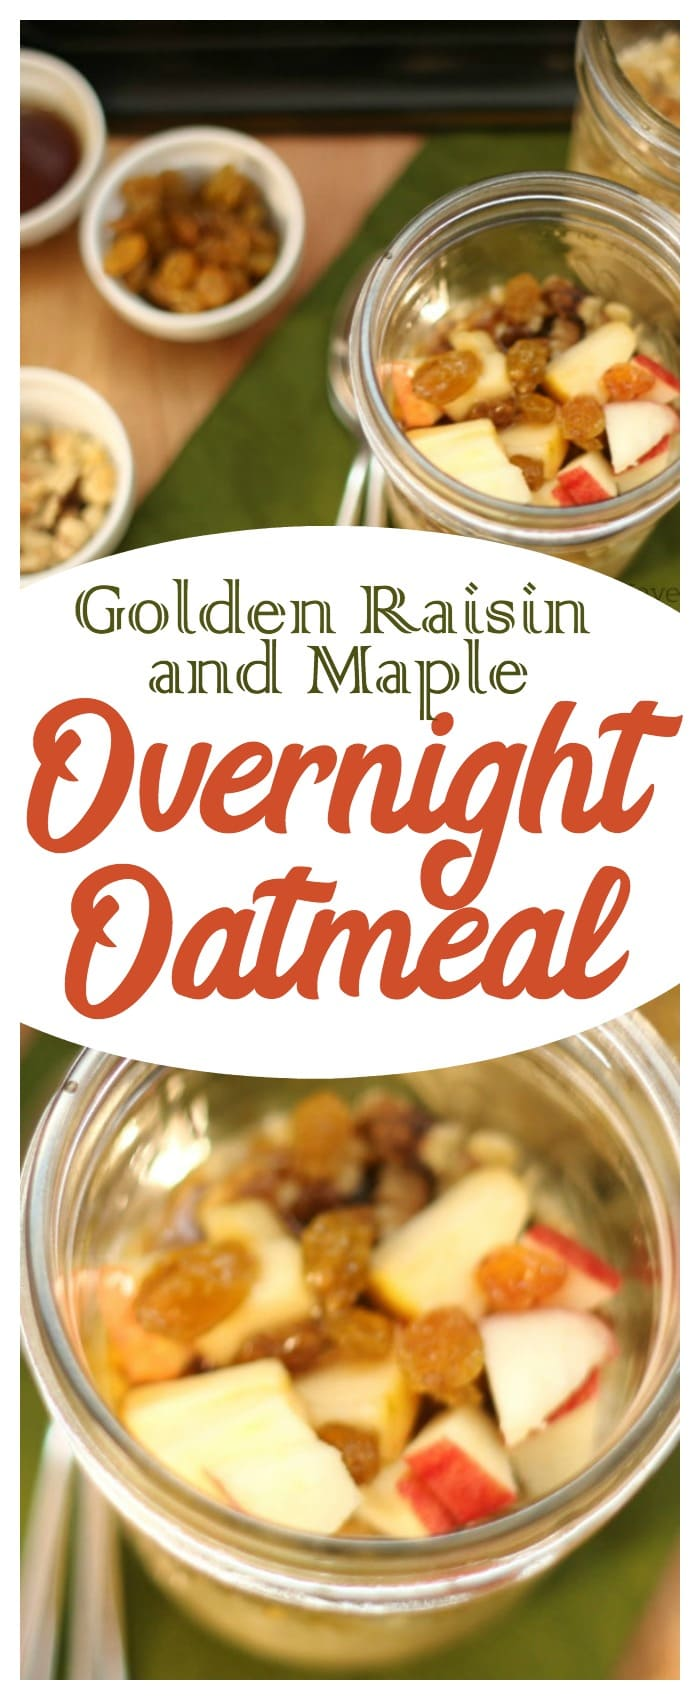 You'll love this easy overnight oatmeal!